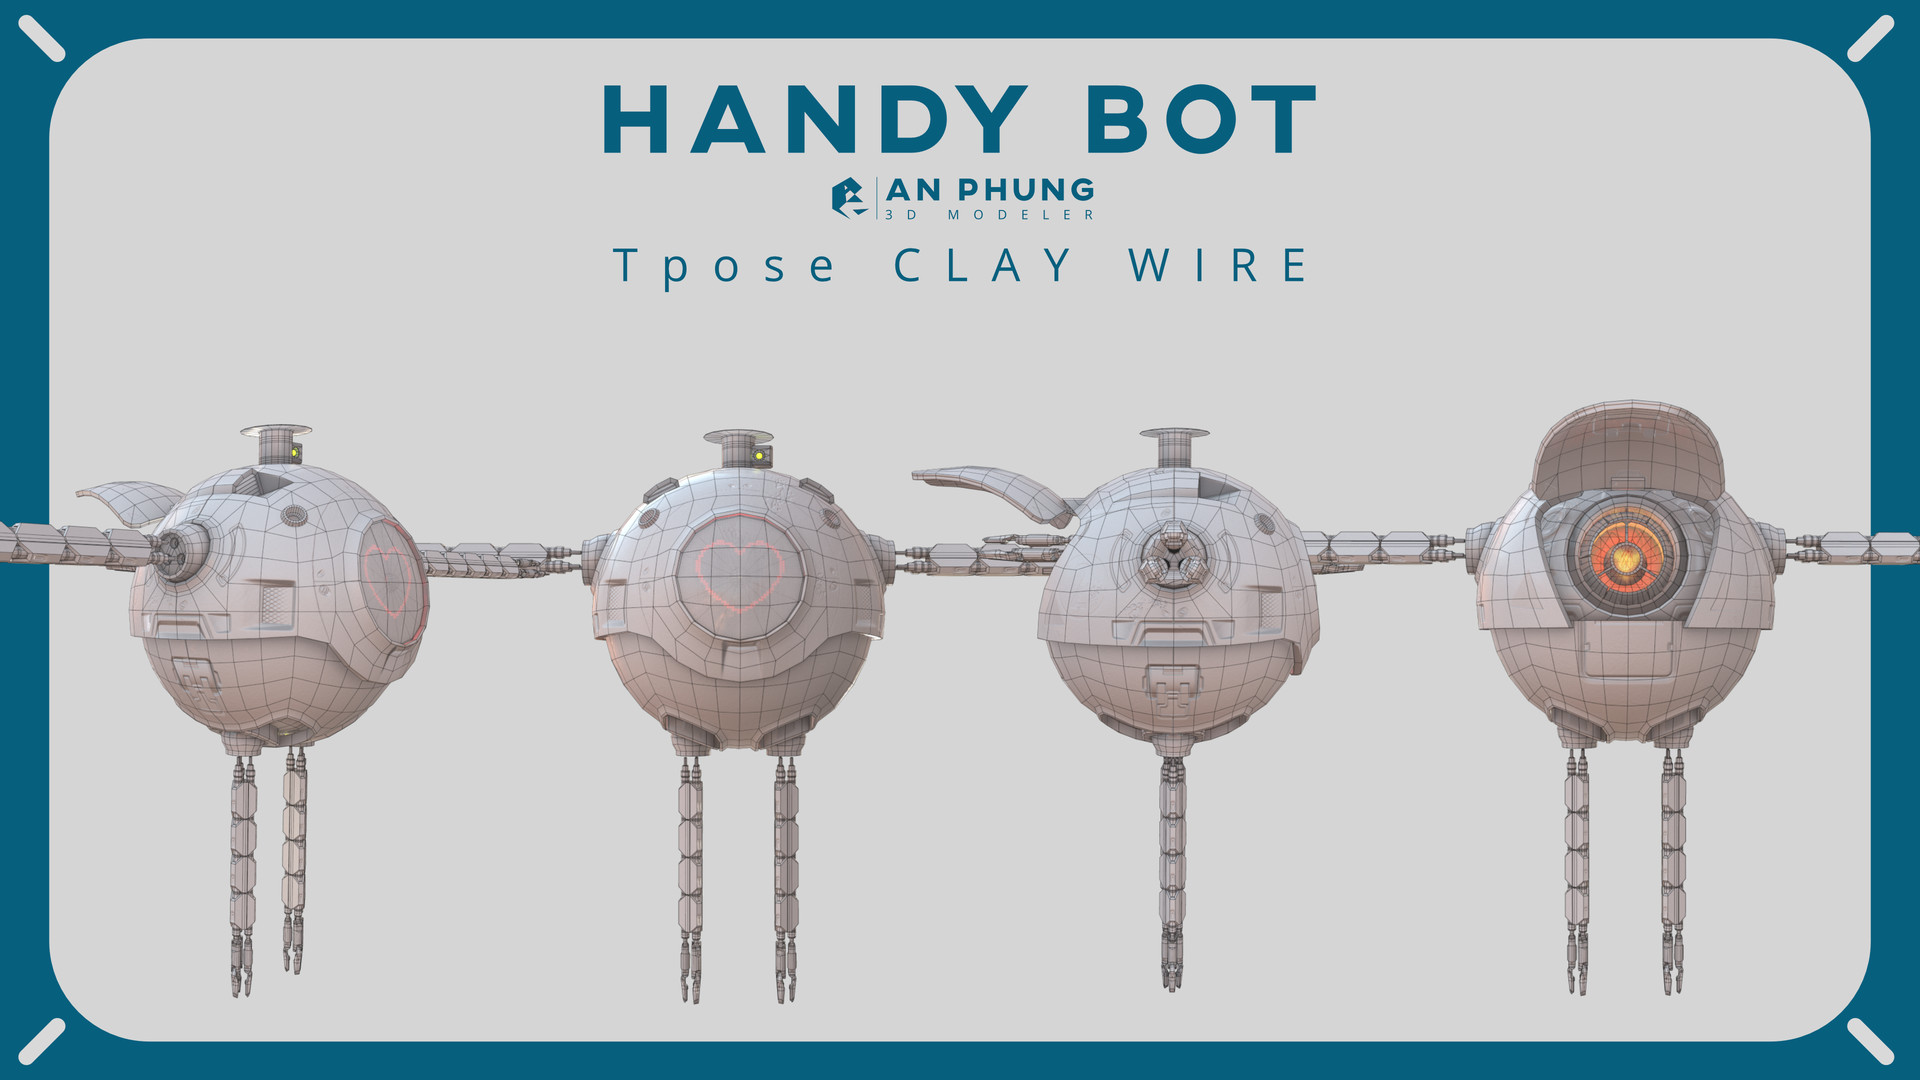 An phung phung handybot final tpose clay wire